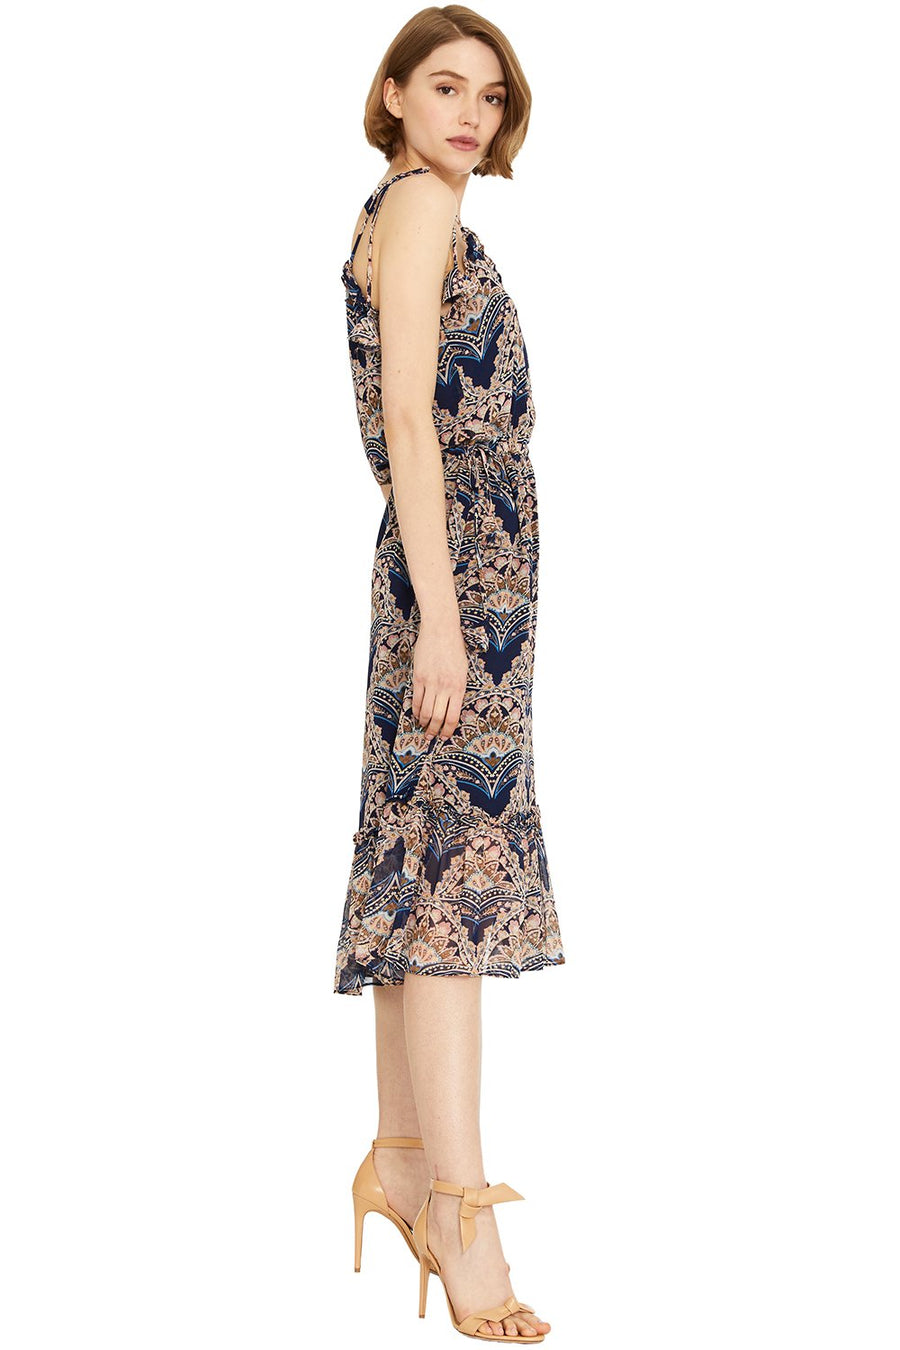 Gianella Dress - Resort Paisley - Pavilion